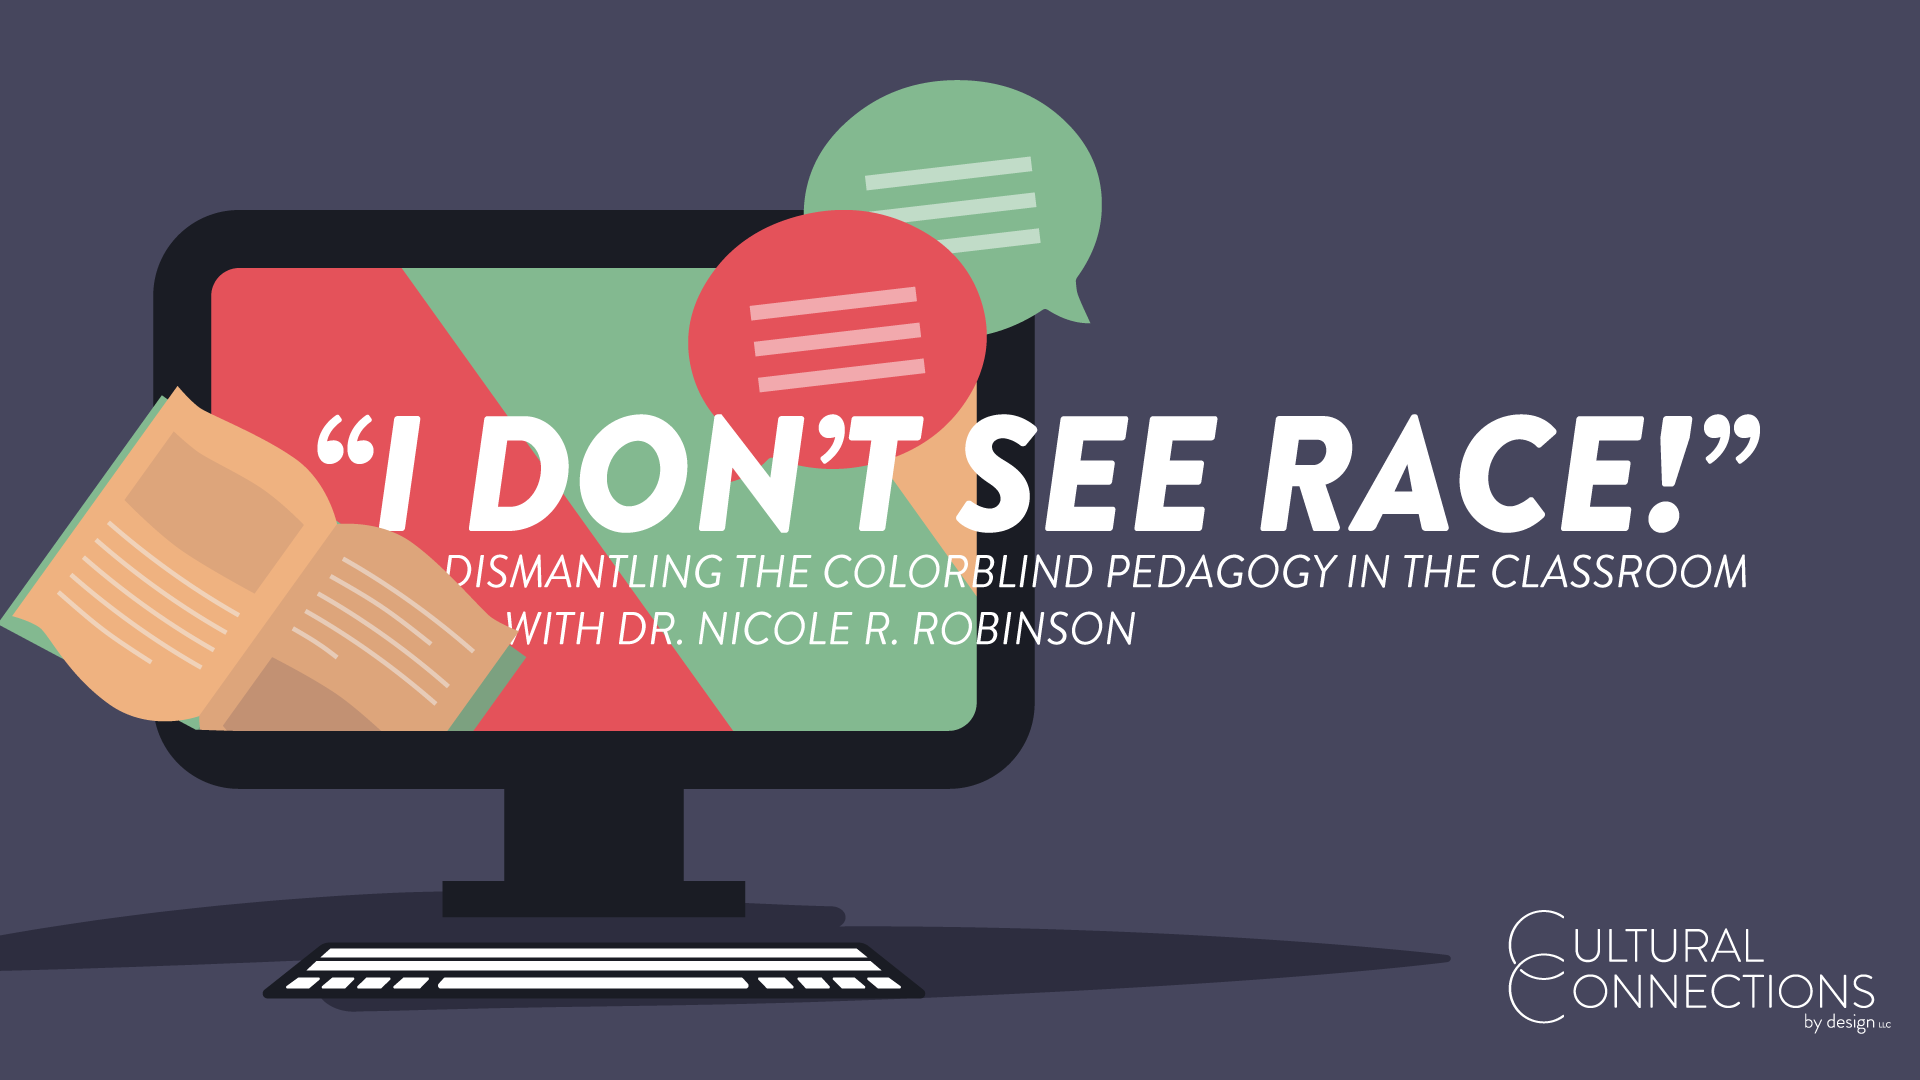 """I don't see race!"" Dismantling the colorblind pedagogy in the classroom"